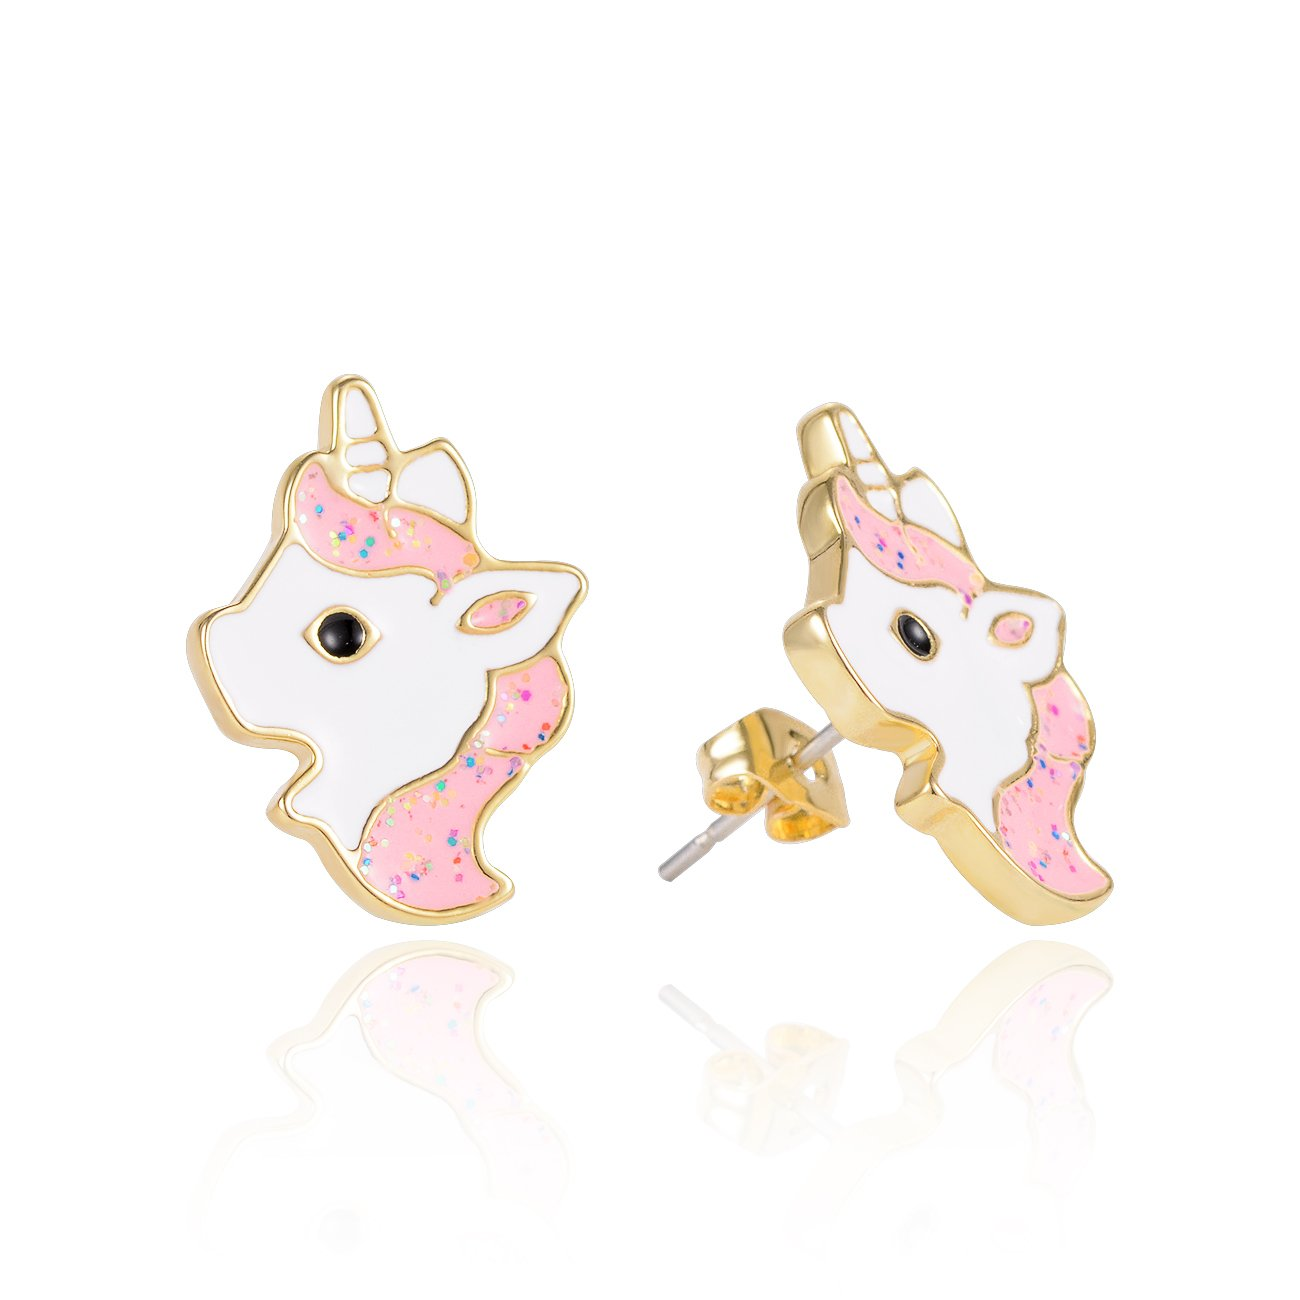 Hypoallergenic Silver Unicorn Stud Earrings for Little Girls Kids Pink Purple Enamel Unicorn Jewelry Birthday Party Gifts for Women (Pink)